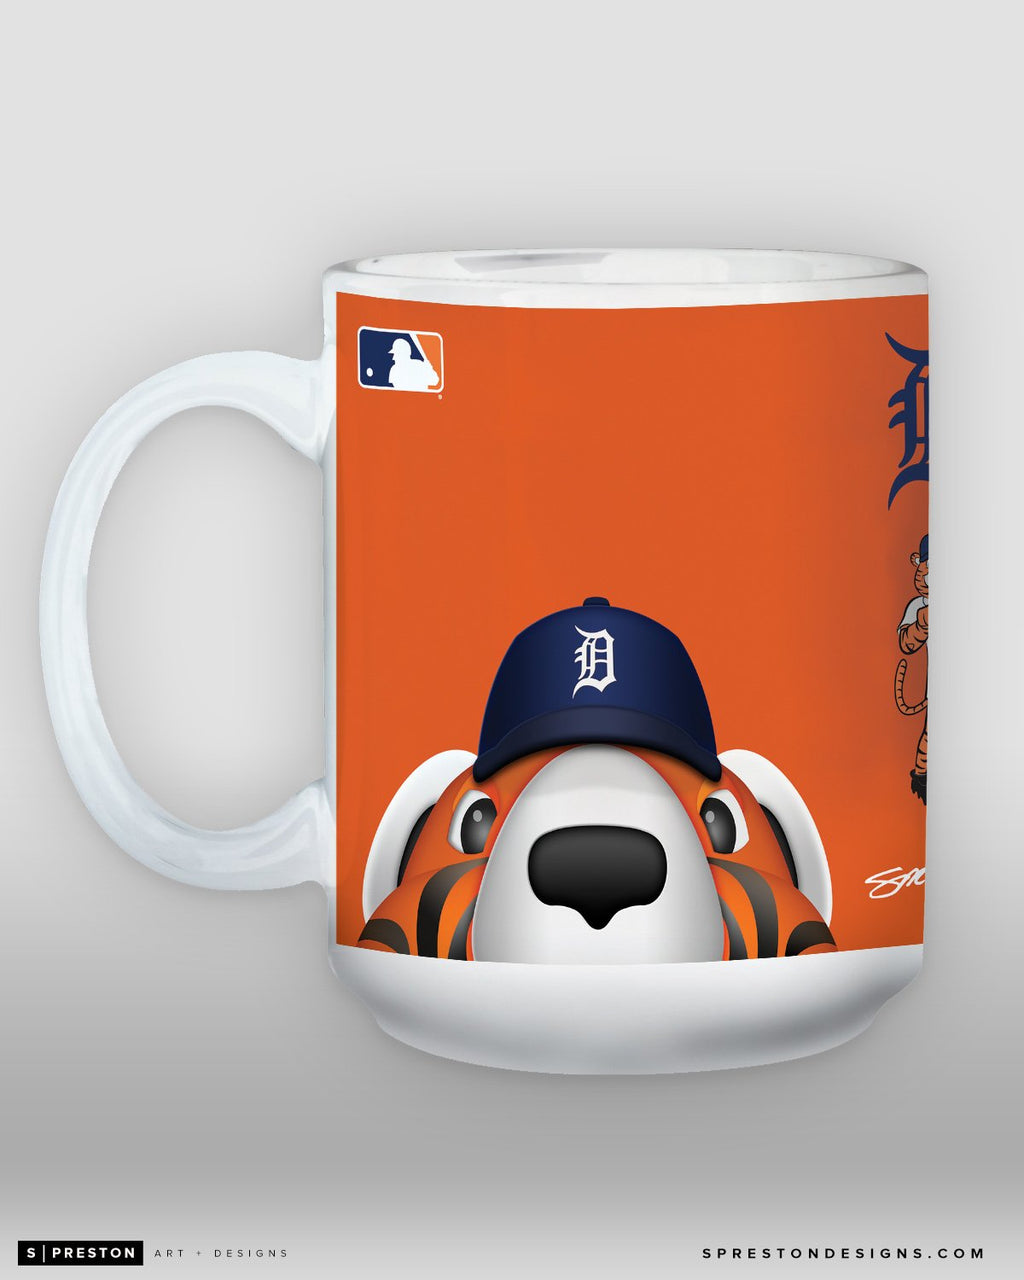 Minimalist Paws Coffee Mug - MLB Licensed - Detroit Tigers Mascot